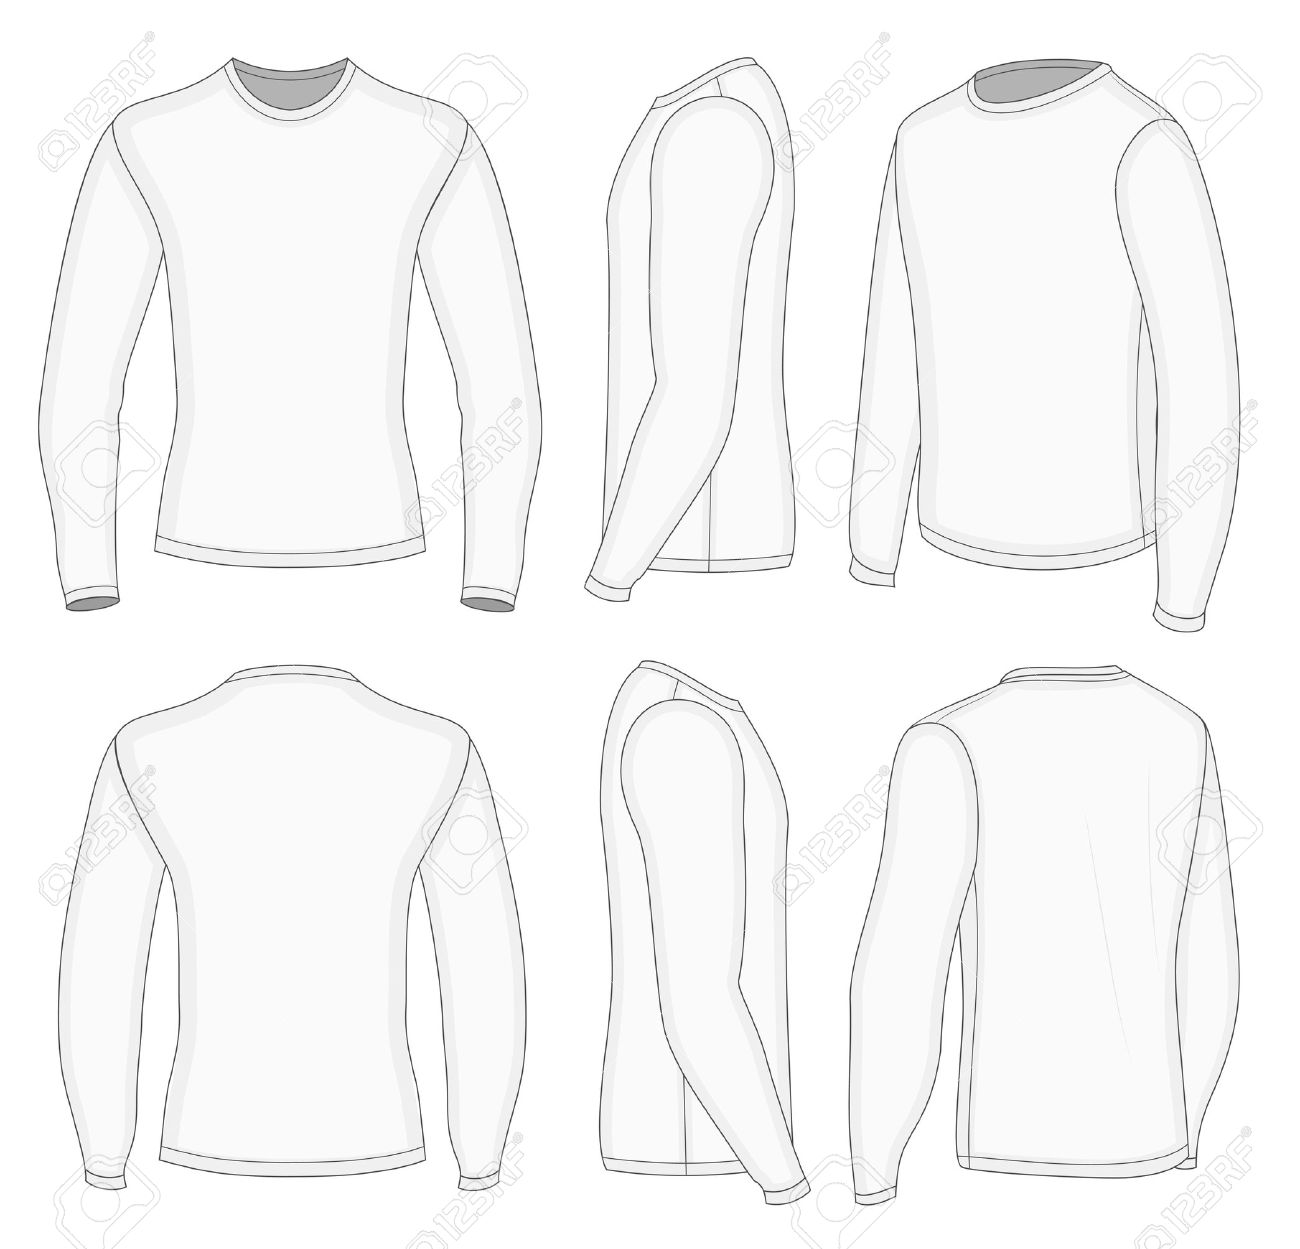 All Six Views Men\'s White Long Sleeve T-shirt Design Templates ...